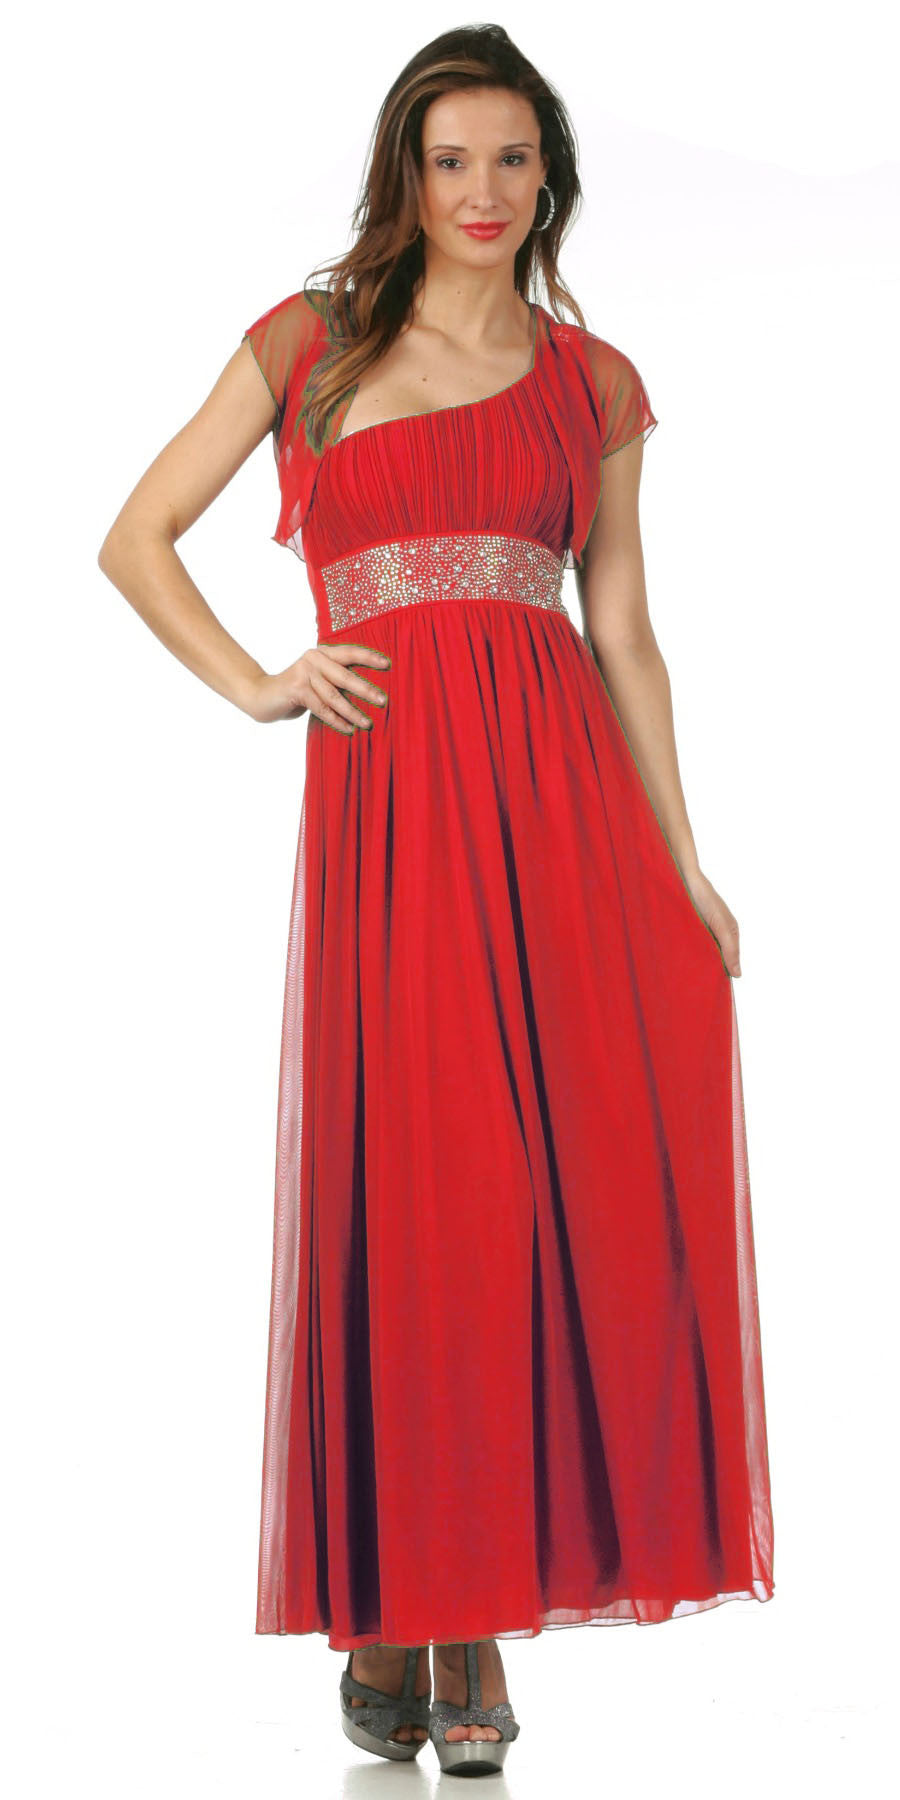 Ankle Length Red Maternity Dress One Shoulder Chiffon Empire